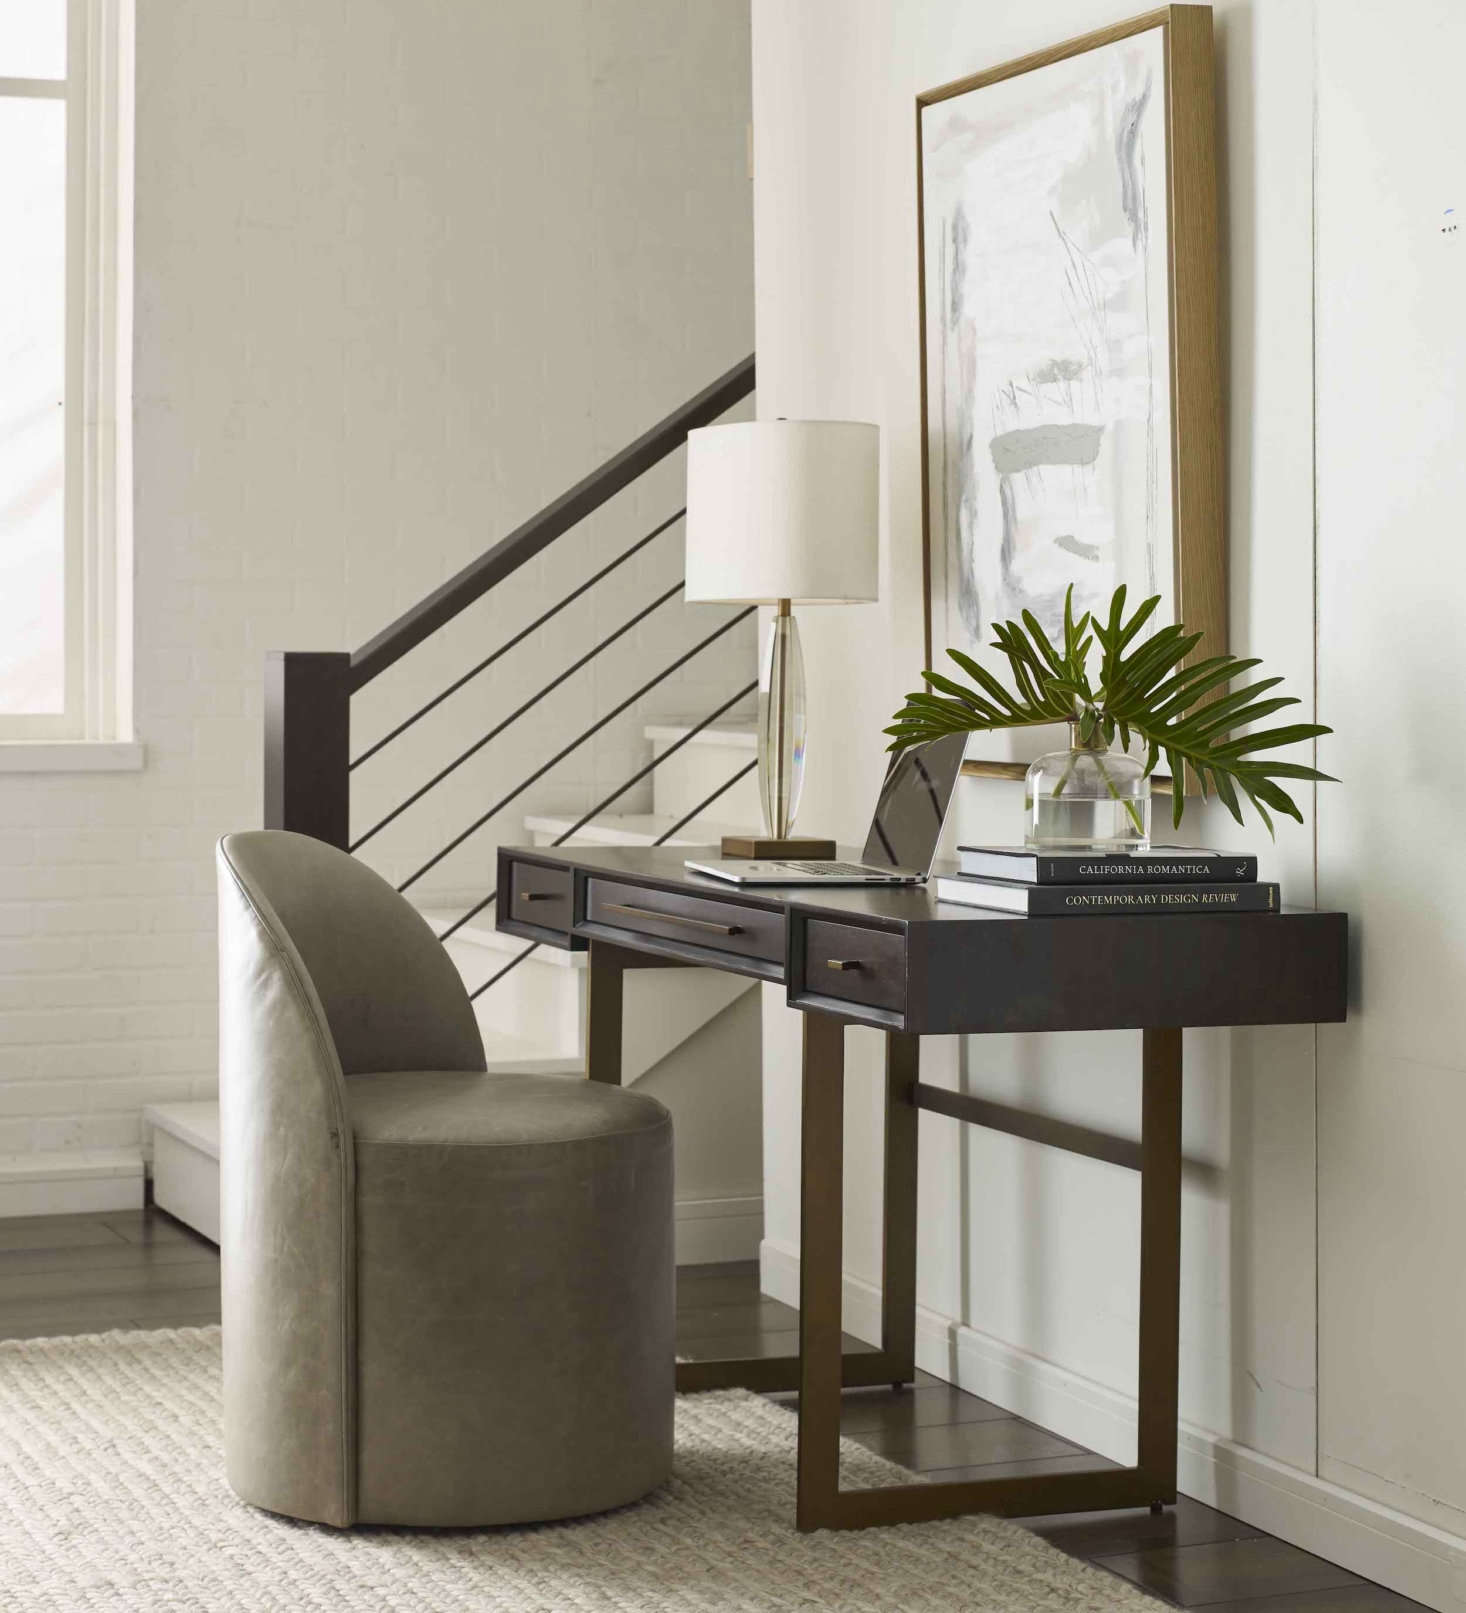 The Allure Desk—shown here with a dark smoked eucalyptus top and brass base—has a slim profile but a generous surface and creates an efficient, good-looking work-from-home setup in any room.